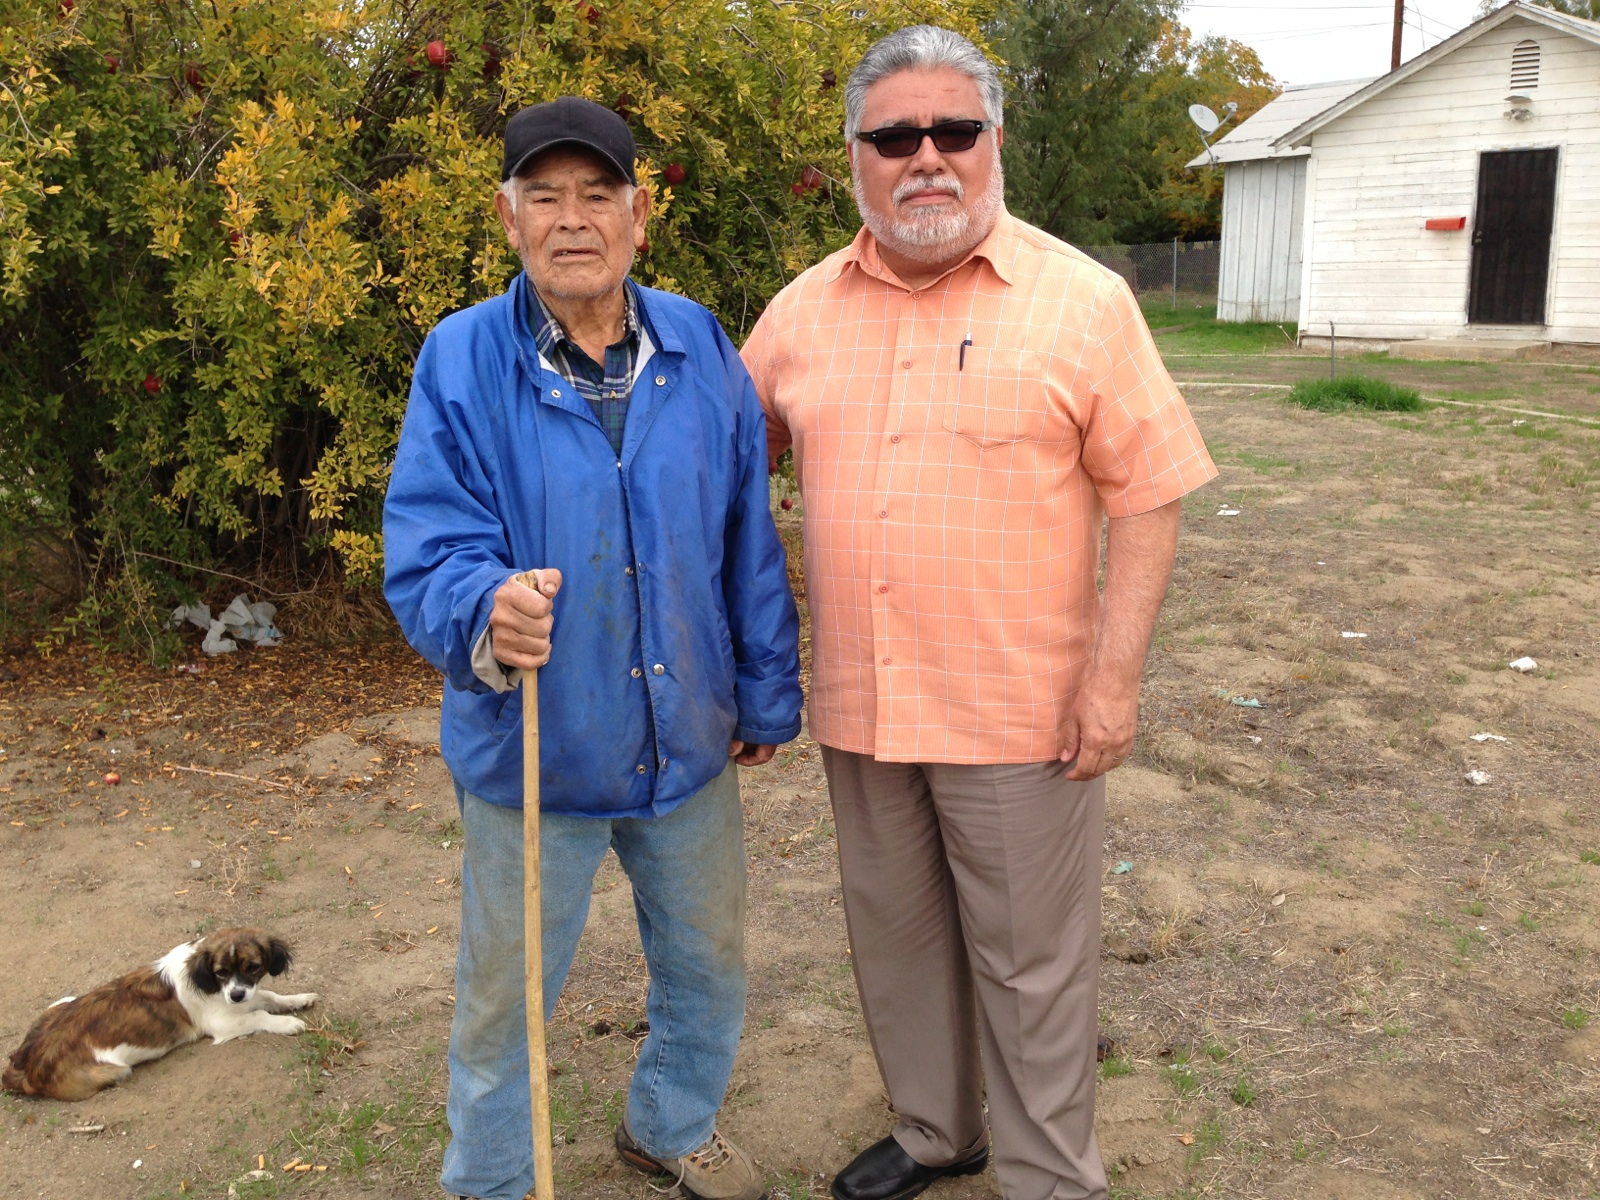 Gilberto Sandoval (left), 81, lives across the street from the church where the showers are parked. Pastor Roman Hernandez started bringing Sandoval drinking water a week ago. (Ezra David Romero/KQED)